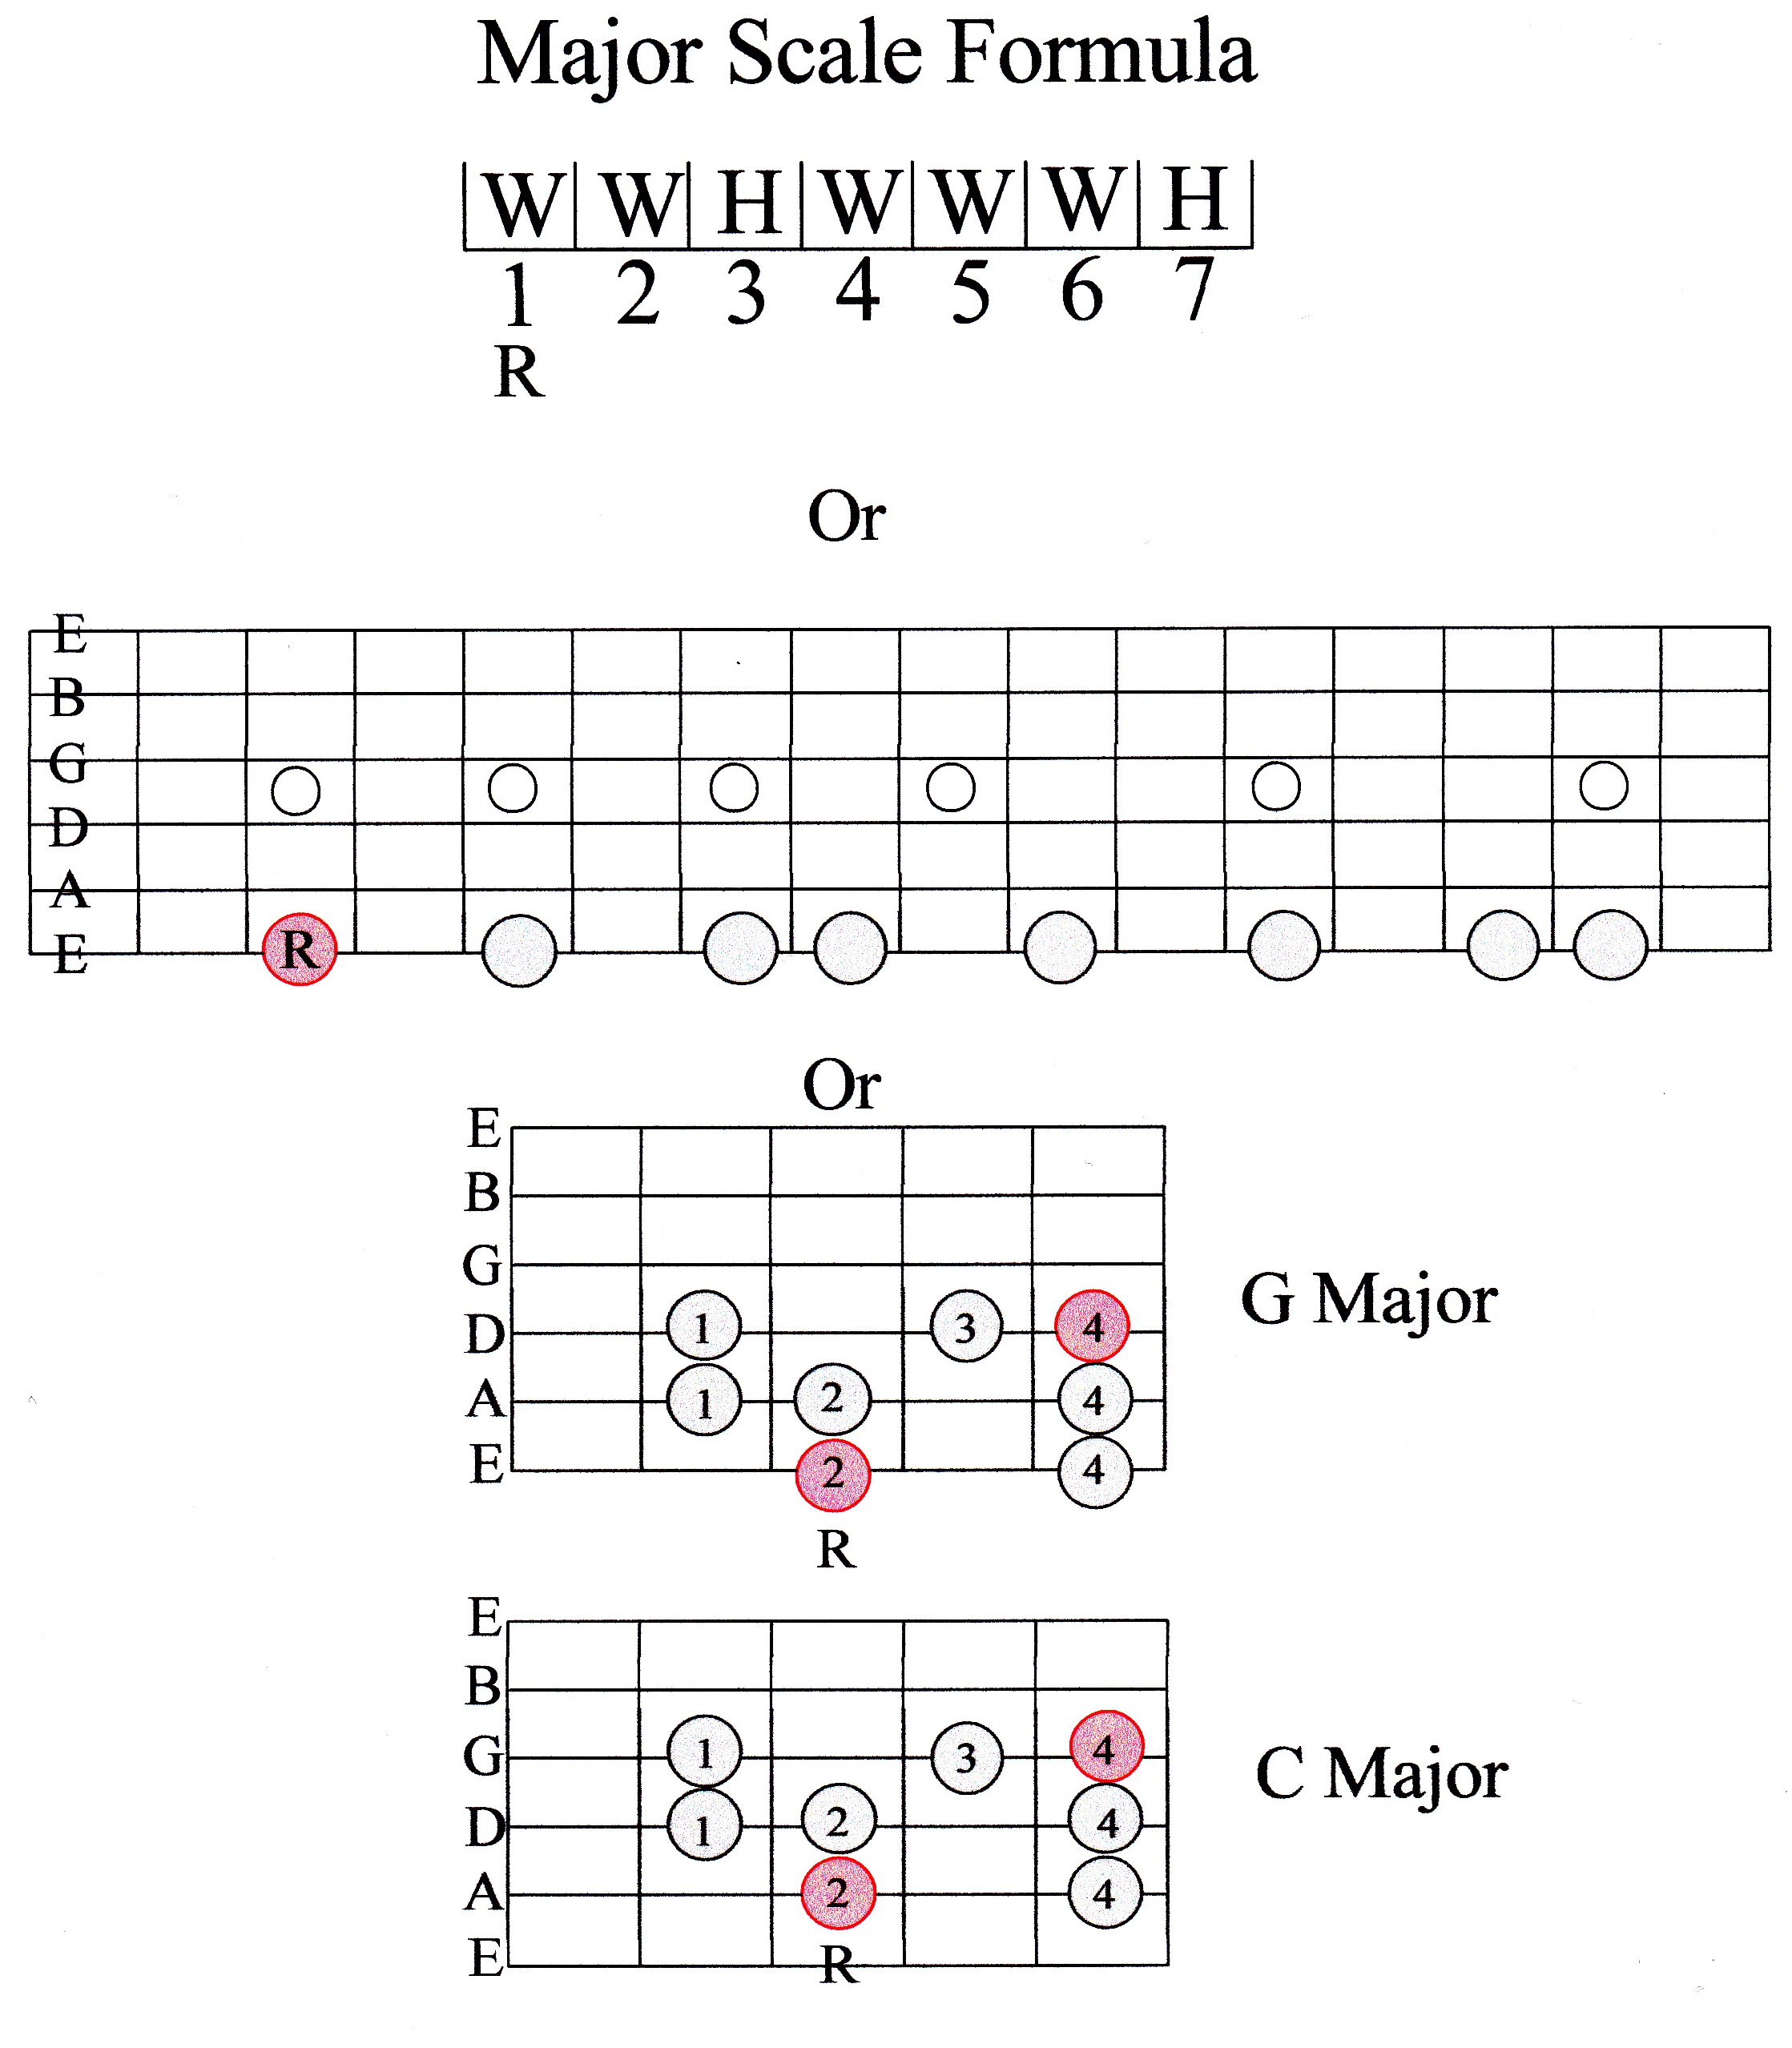 Guitar Scale Guide Beginner Marcus Curtis Music Strings Notes Diagram Chart String The Formula For Major Is Whole Step Half Or W H Each Note Of